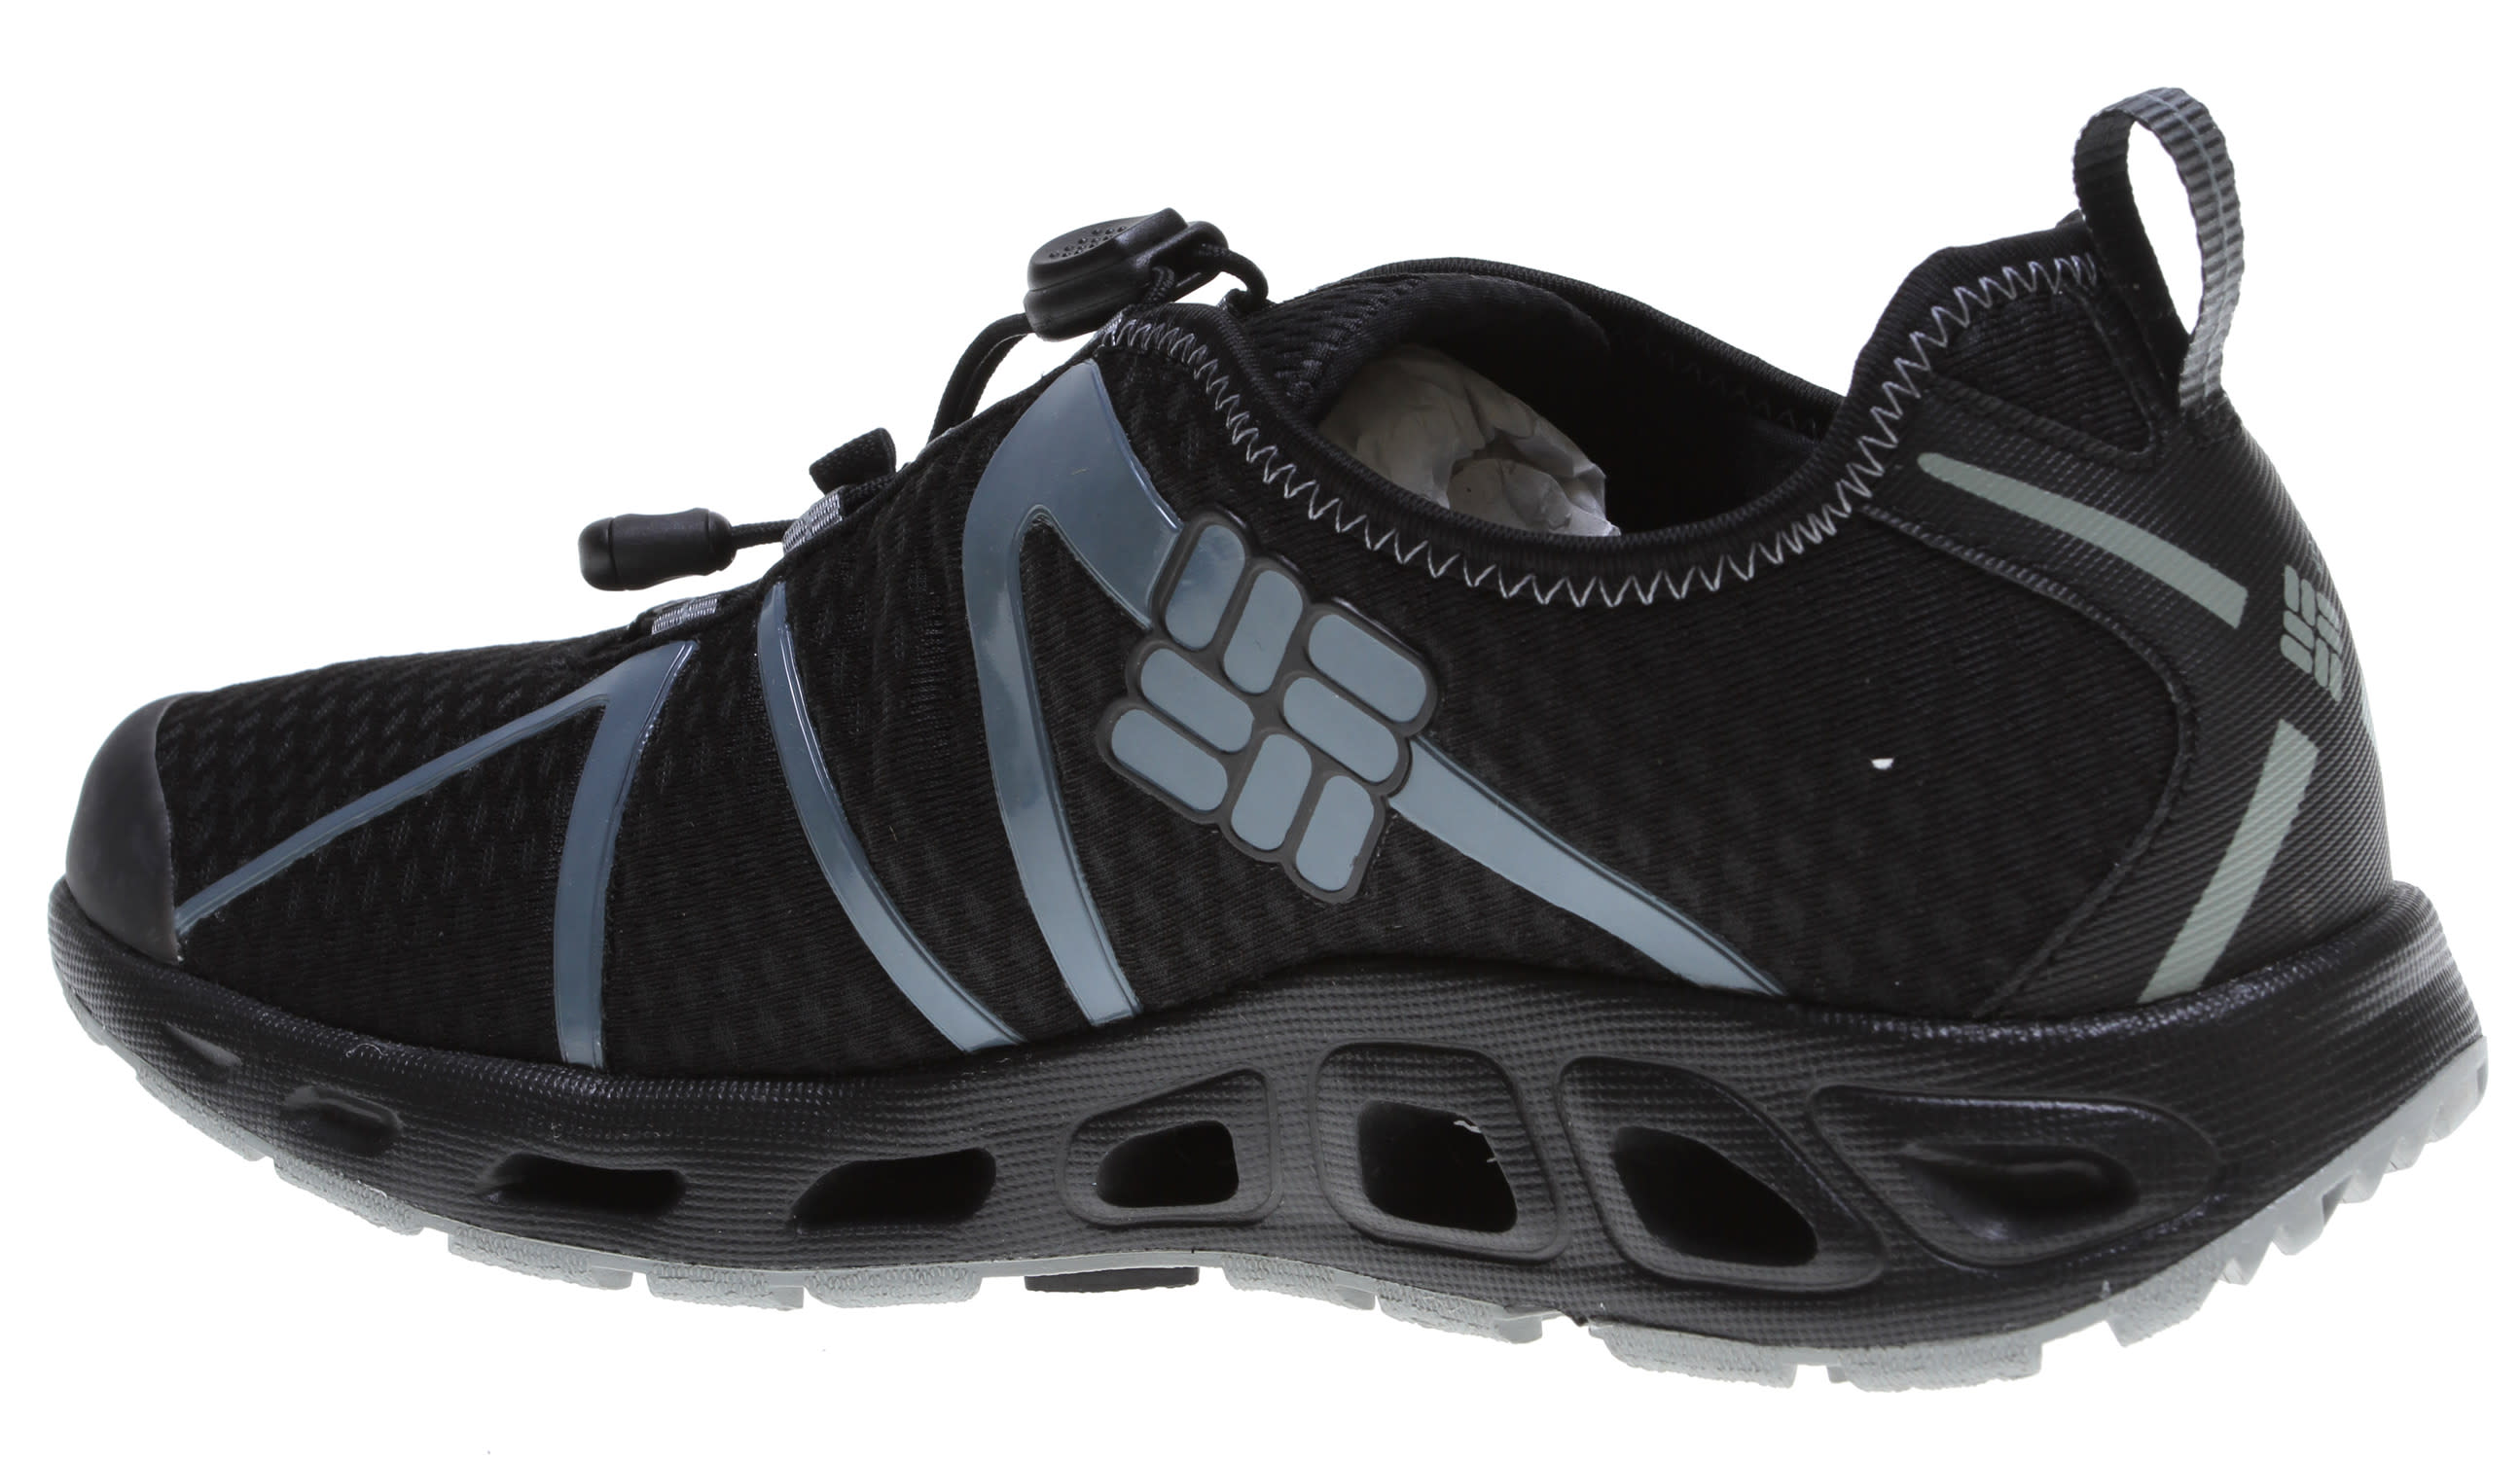 ababde0200c0 Columbia Powerdrain Cool Water Shoes - thumbnail 3